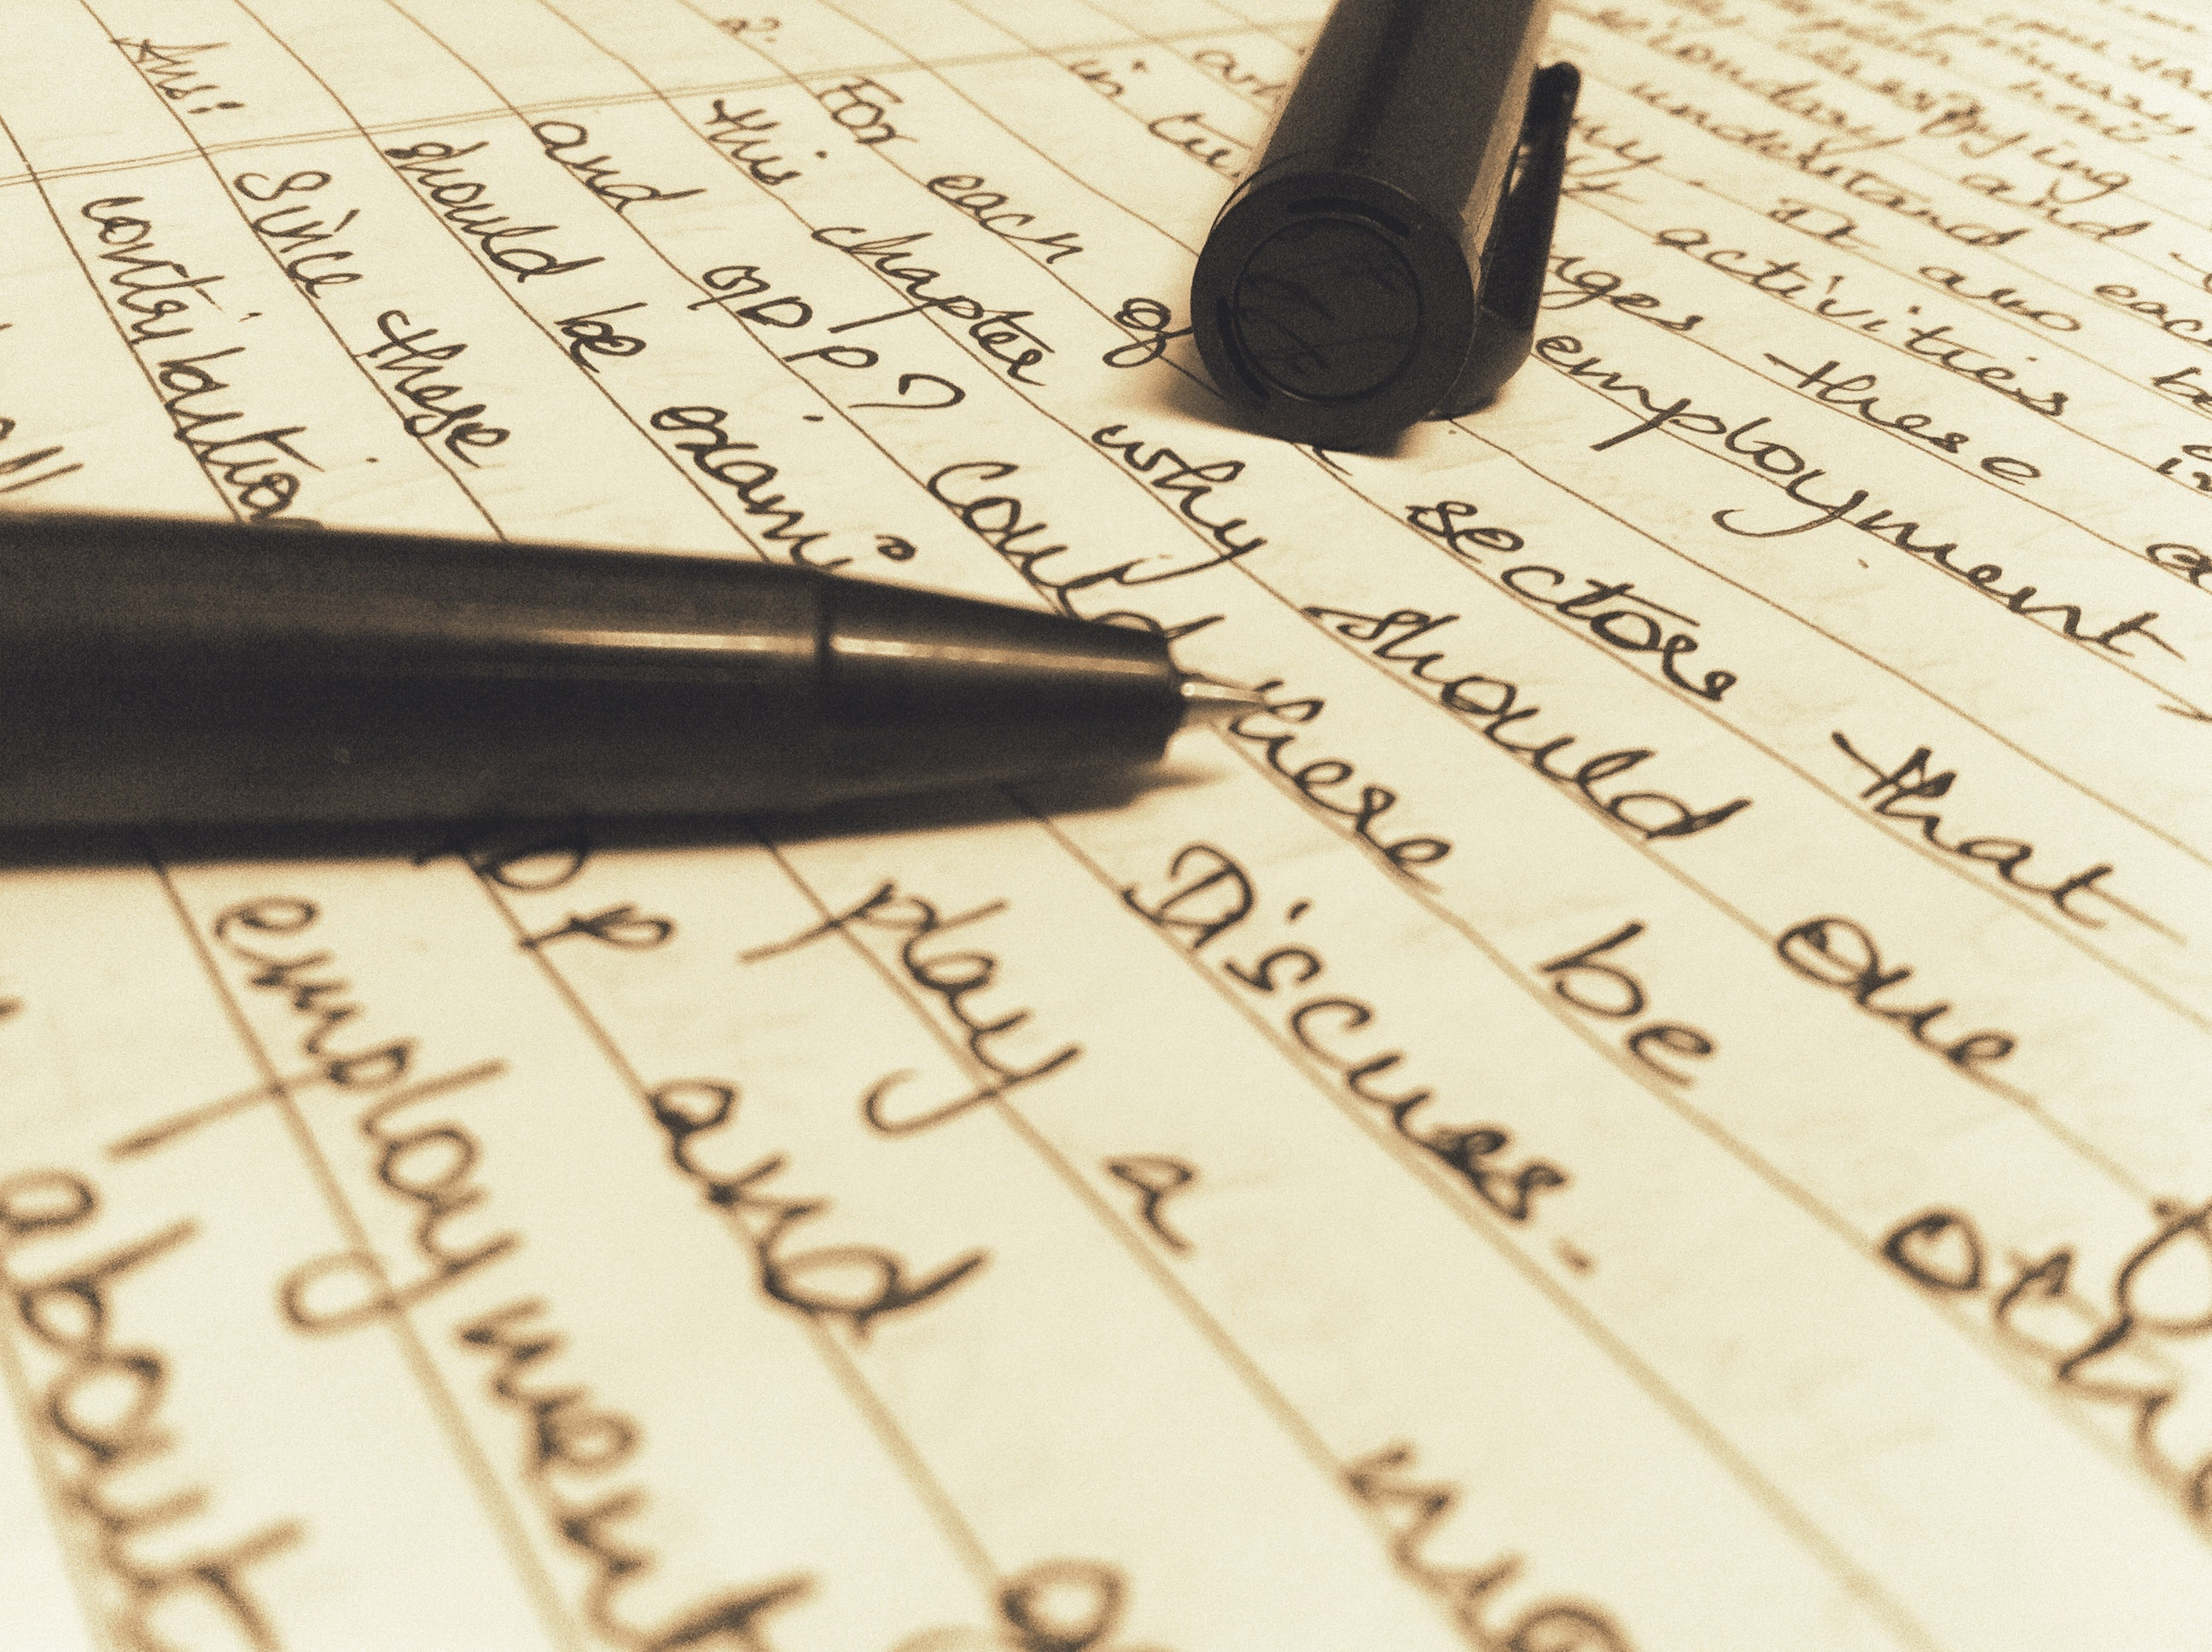 Crimes of grammar and other writing misdemeanours